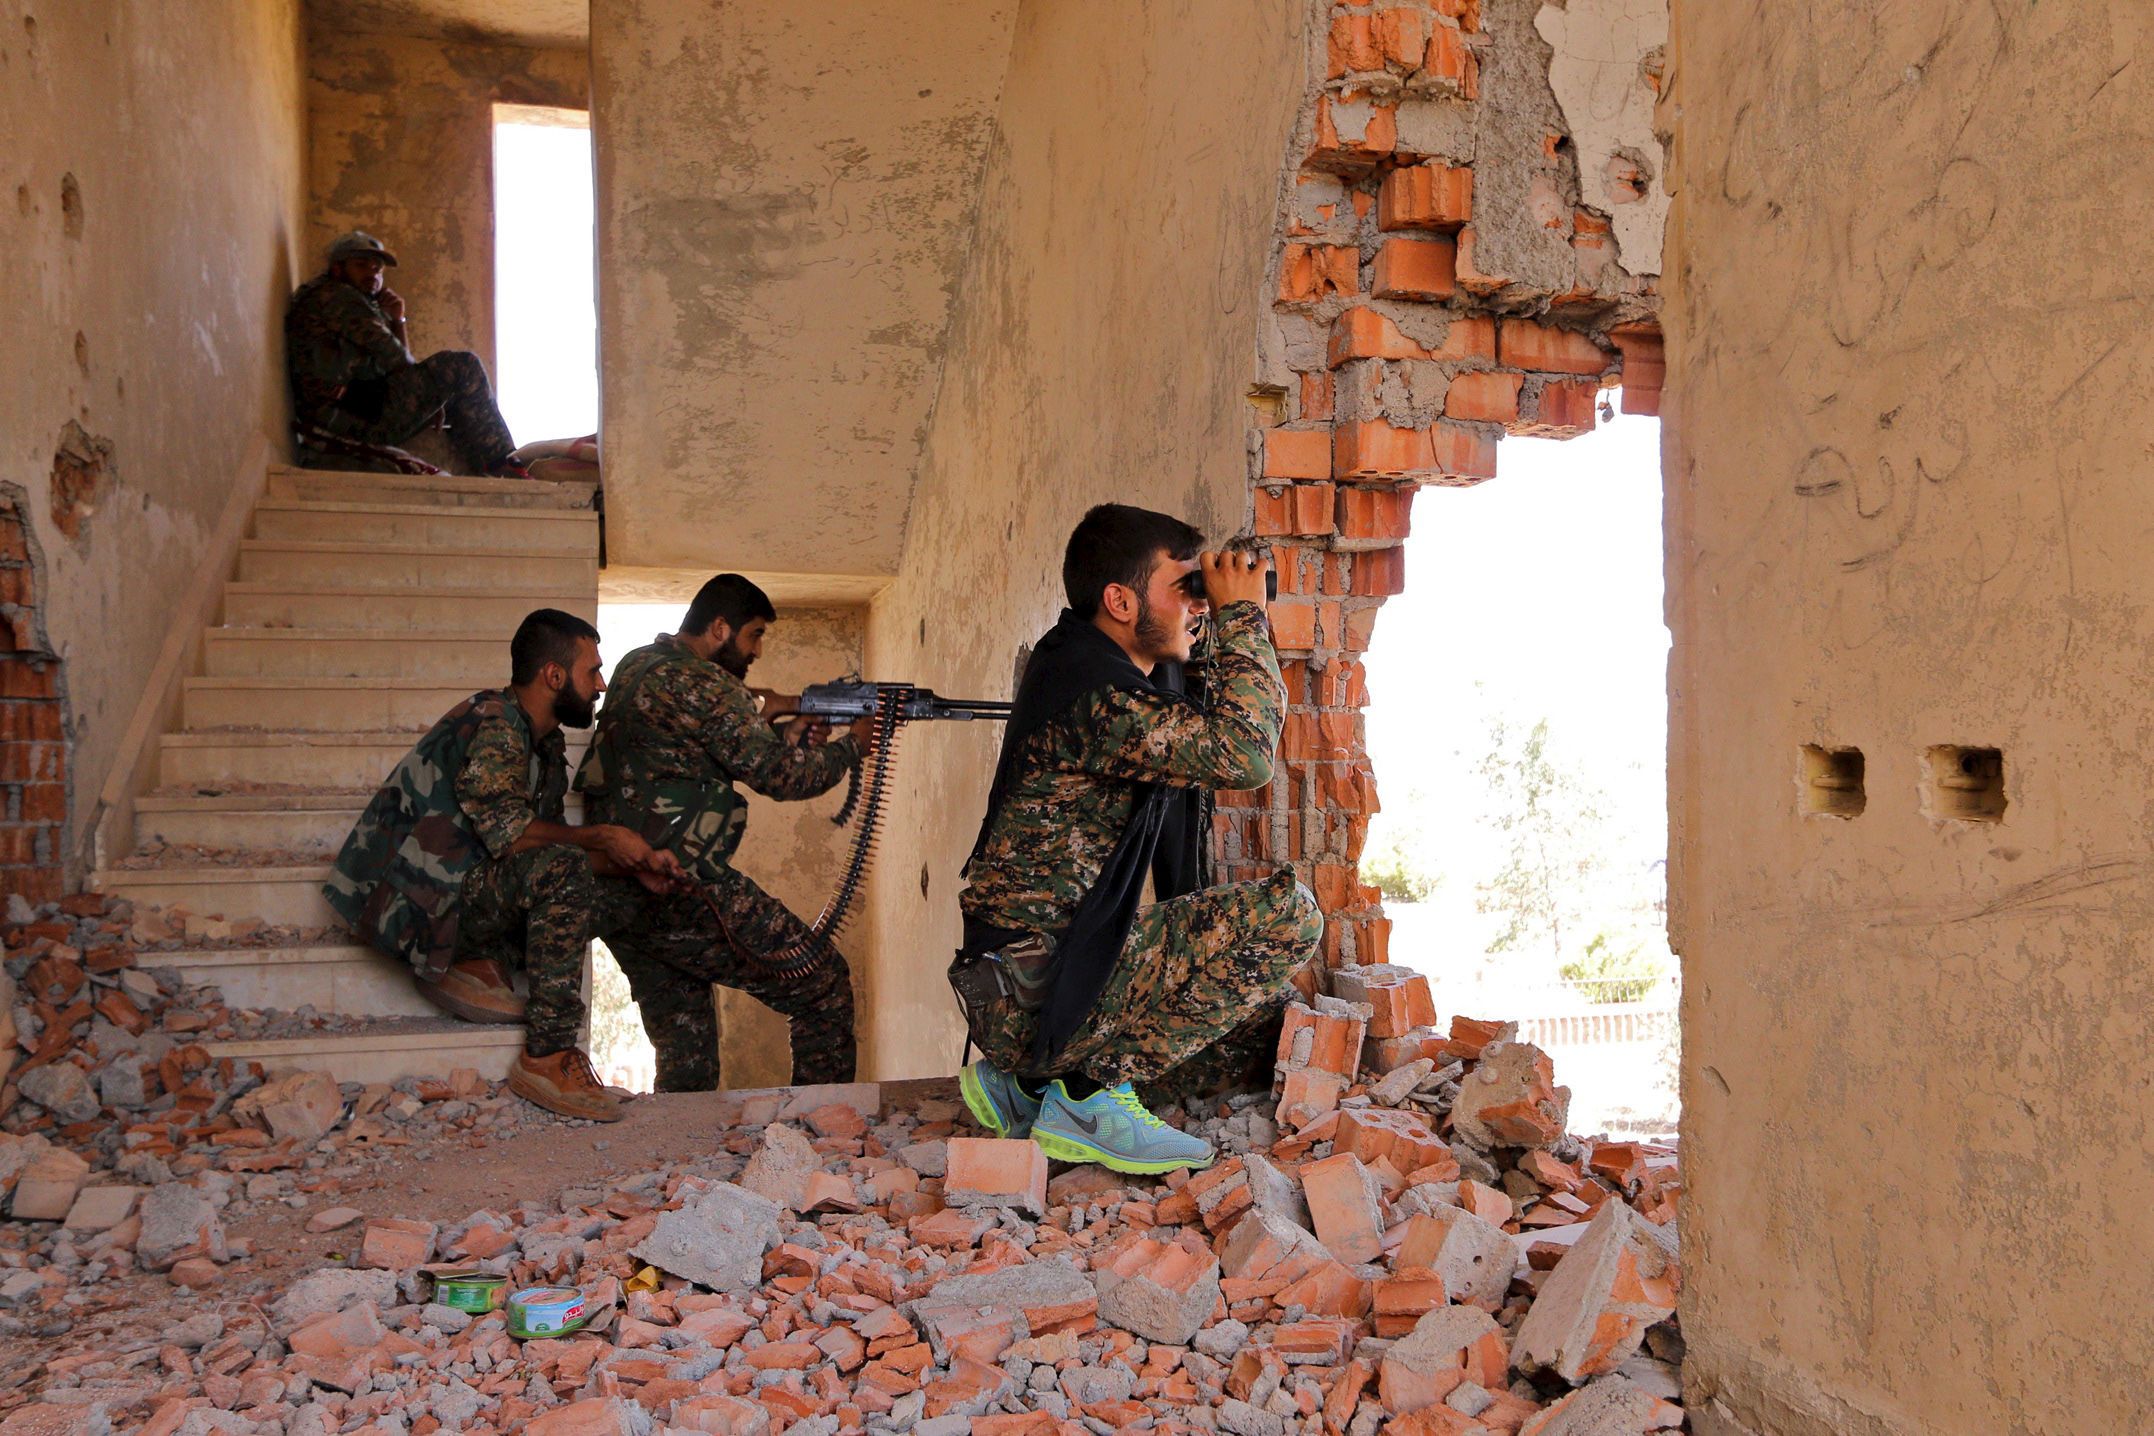 Kurdish People's Protection Units (YPG) fighters take up positions inside a damaged building in al-Vilat al-Homor neighborhood in Hasaka city, as they monitor the movements of Islamic State fighters who are stationed in Ghwayran neighborhood in Hasaka city, Syria on July 22, 2015.